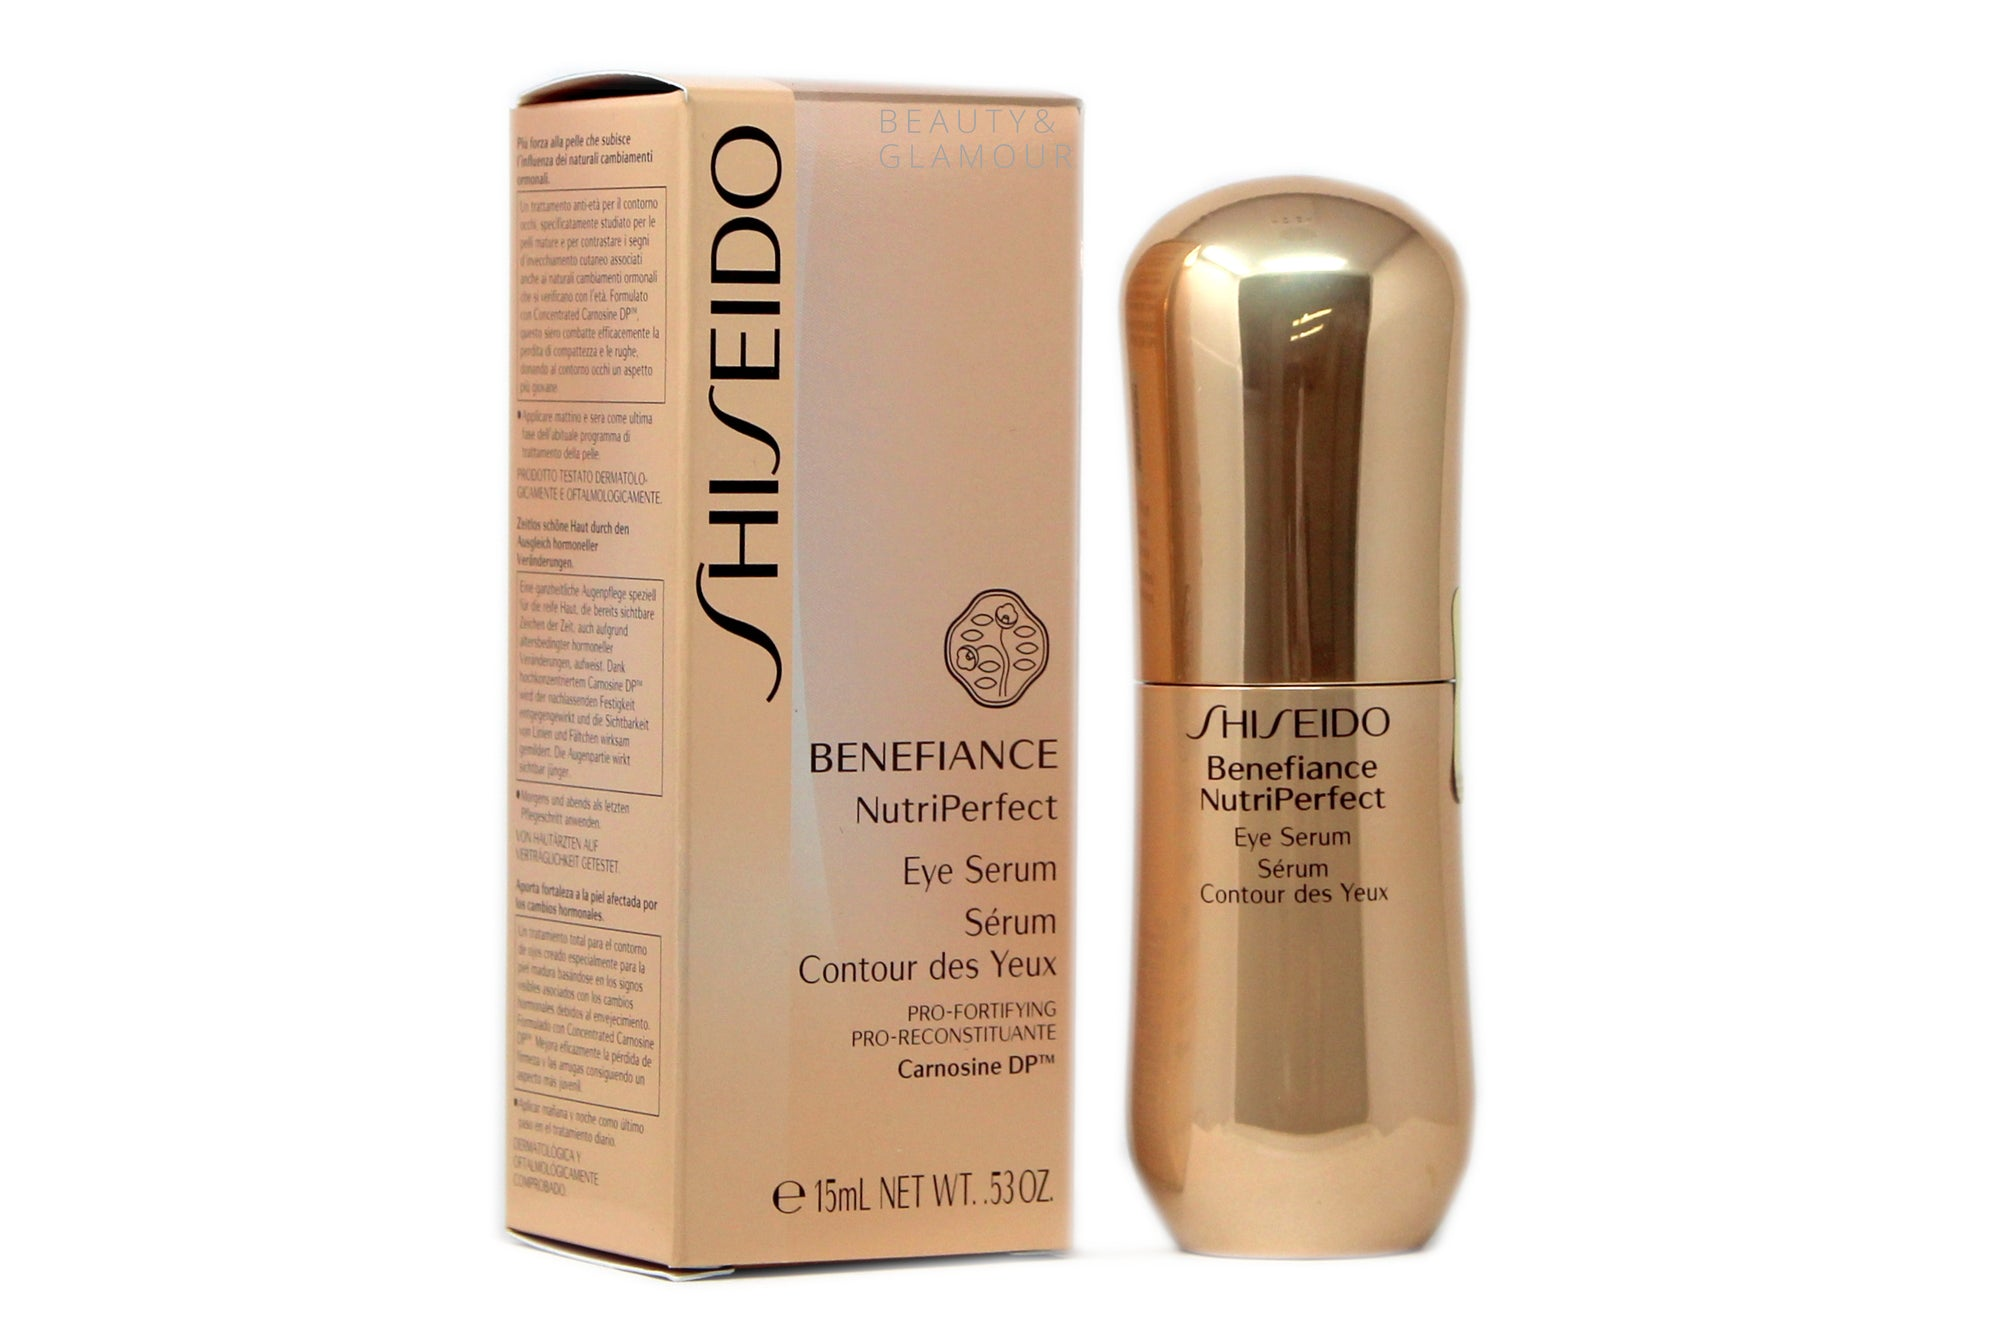 SHISEIDO BENEFIANCE NUTRIPERFECT EYE SERUM PRO-FORTIFYING